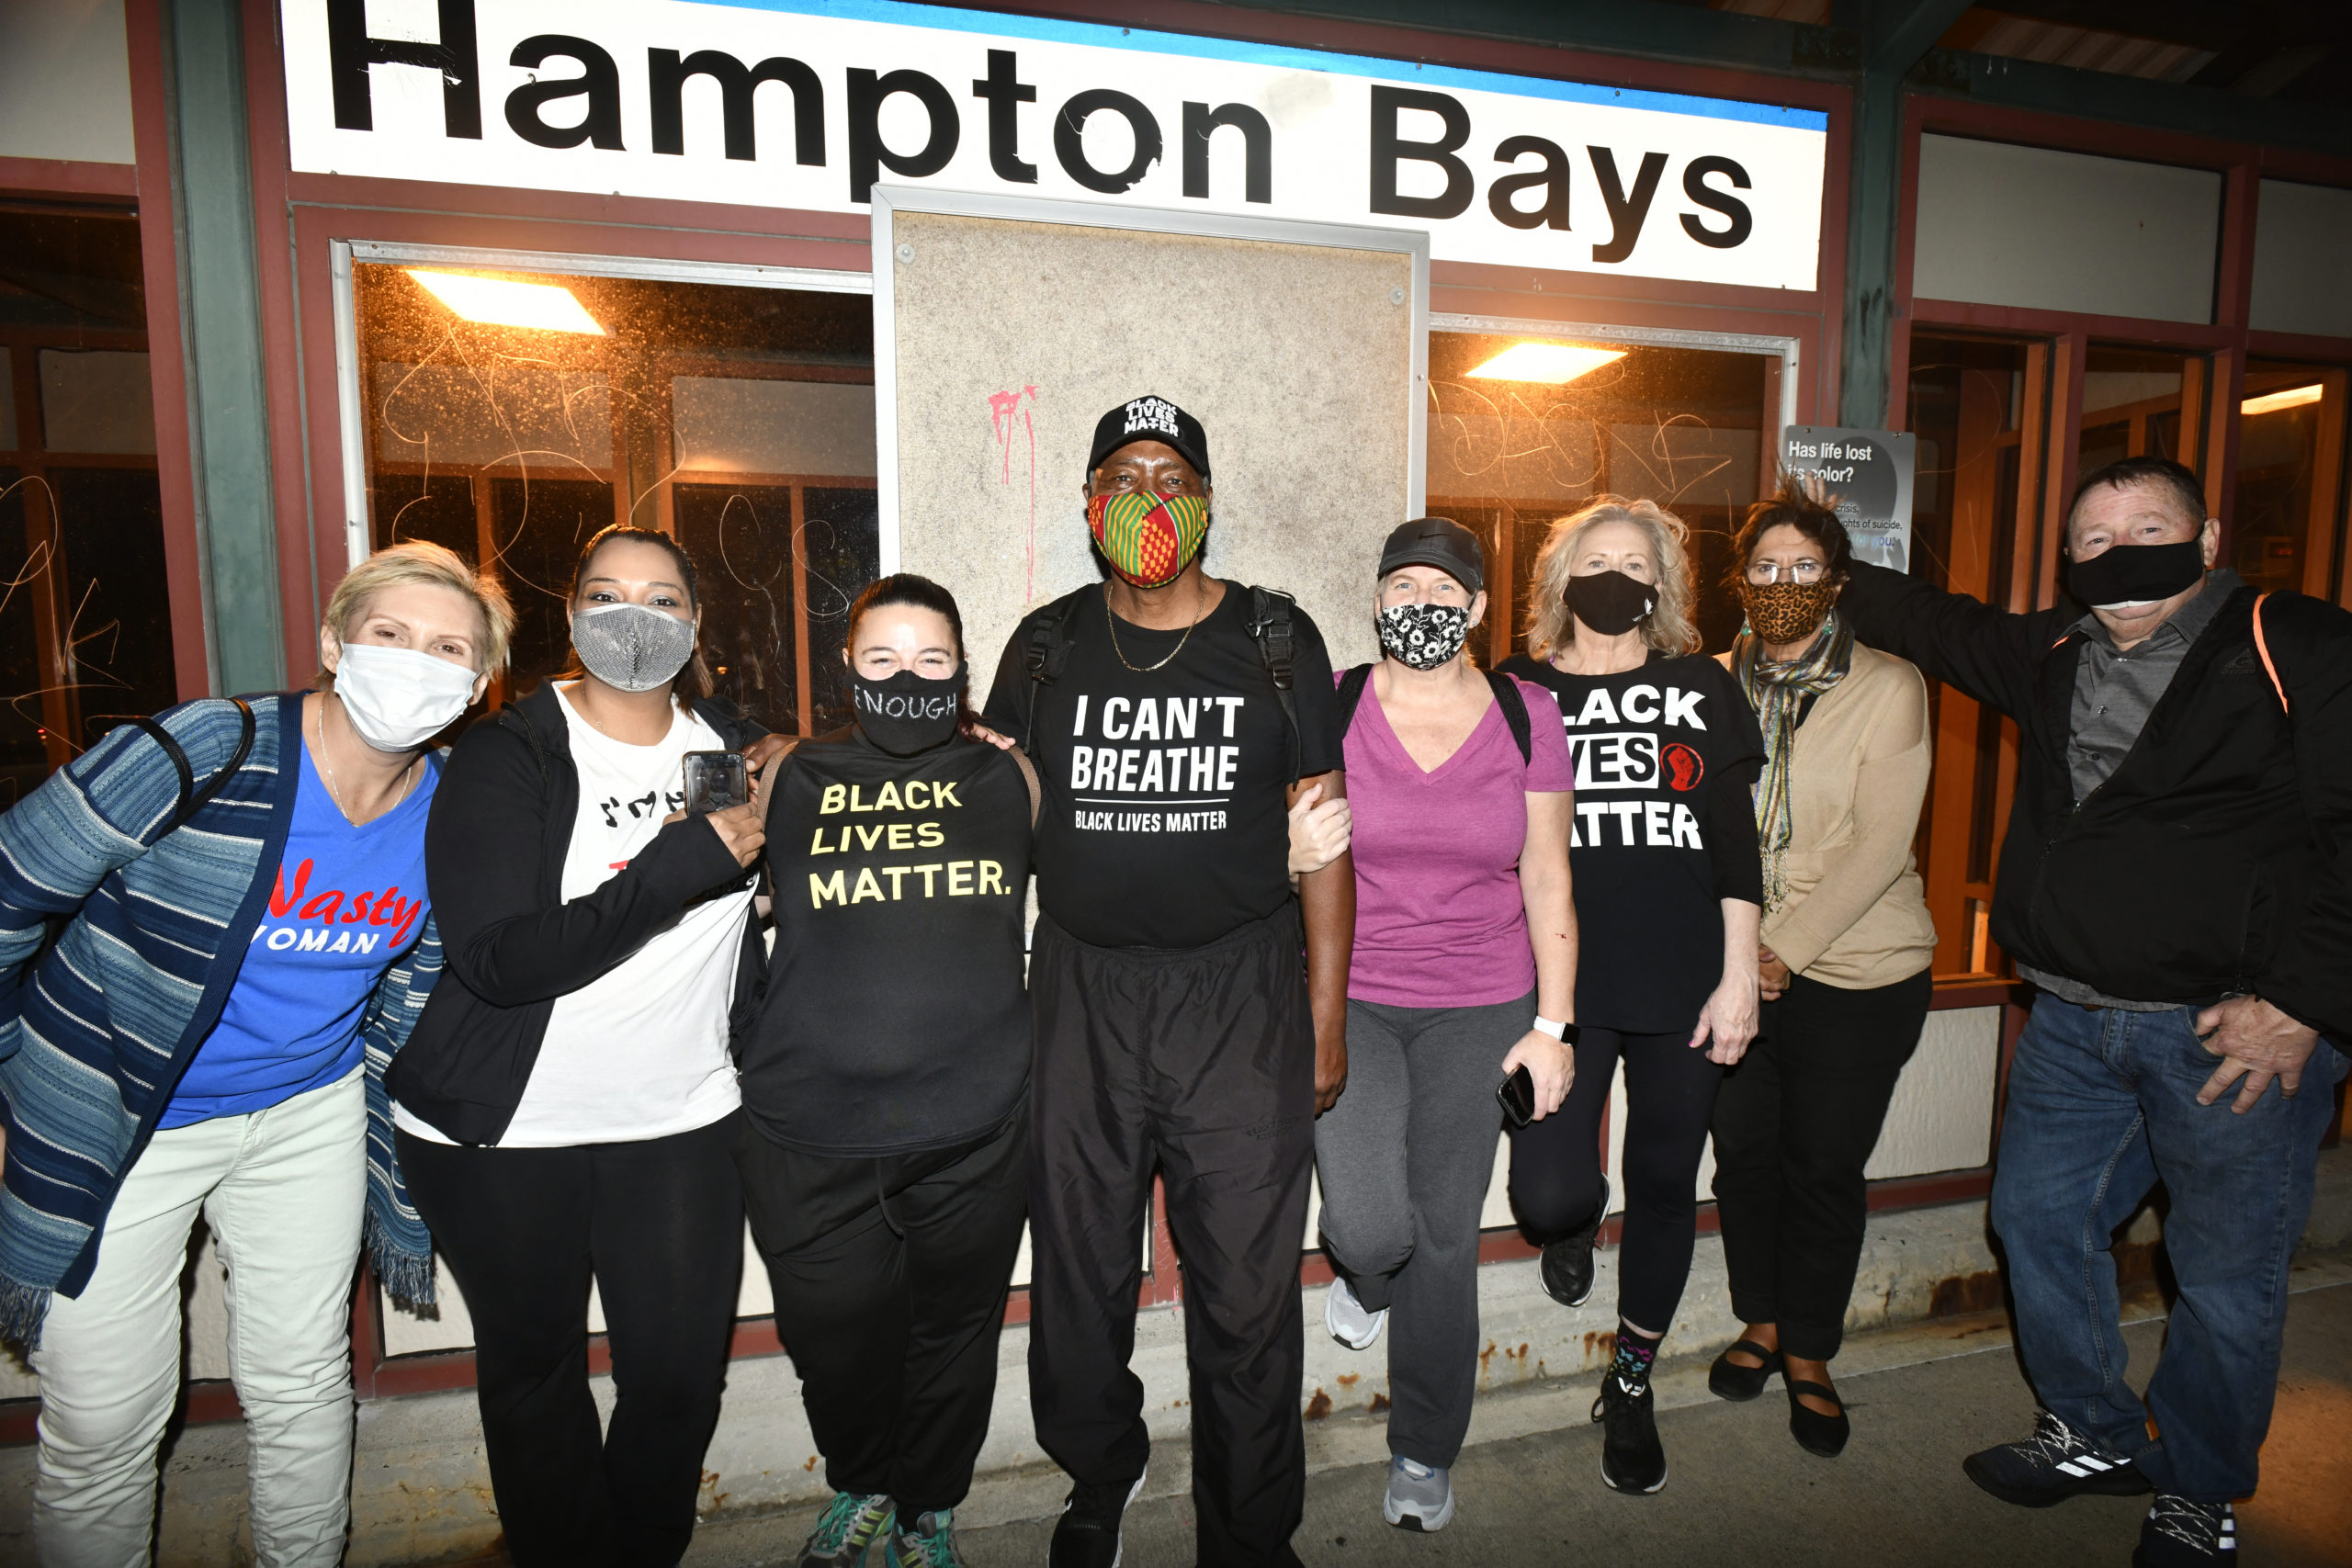 Leon Goodman and the group who walked with him on Sunday at the Hampton Bays train station.  DANA SHAW